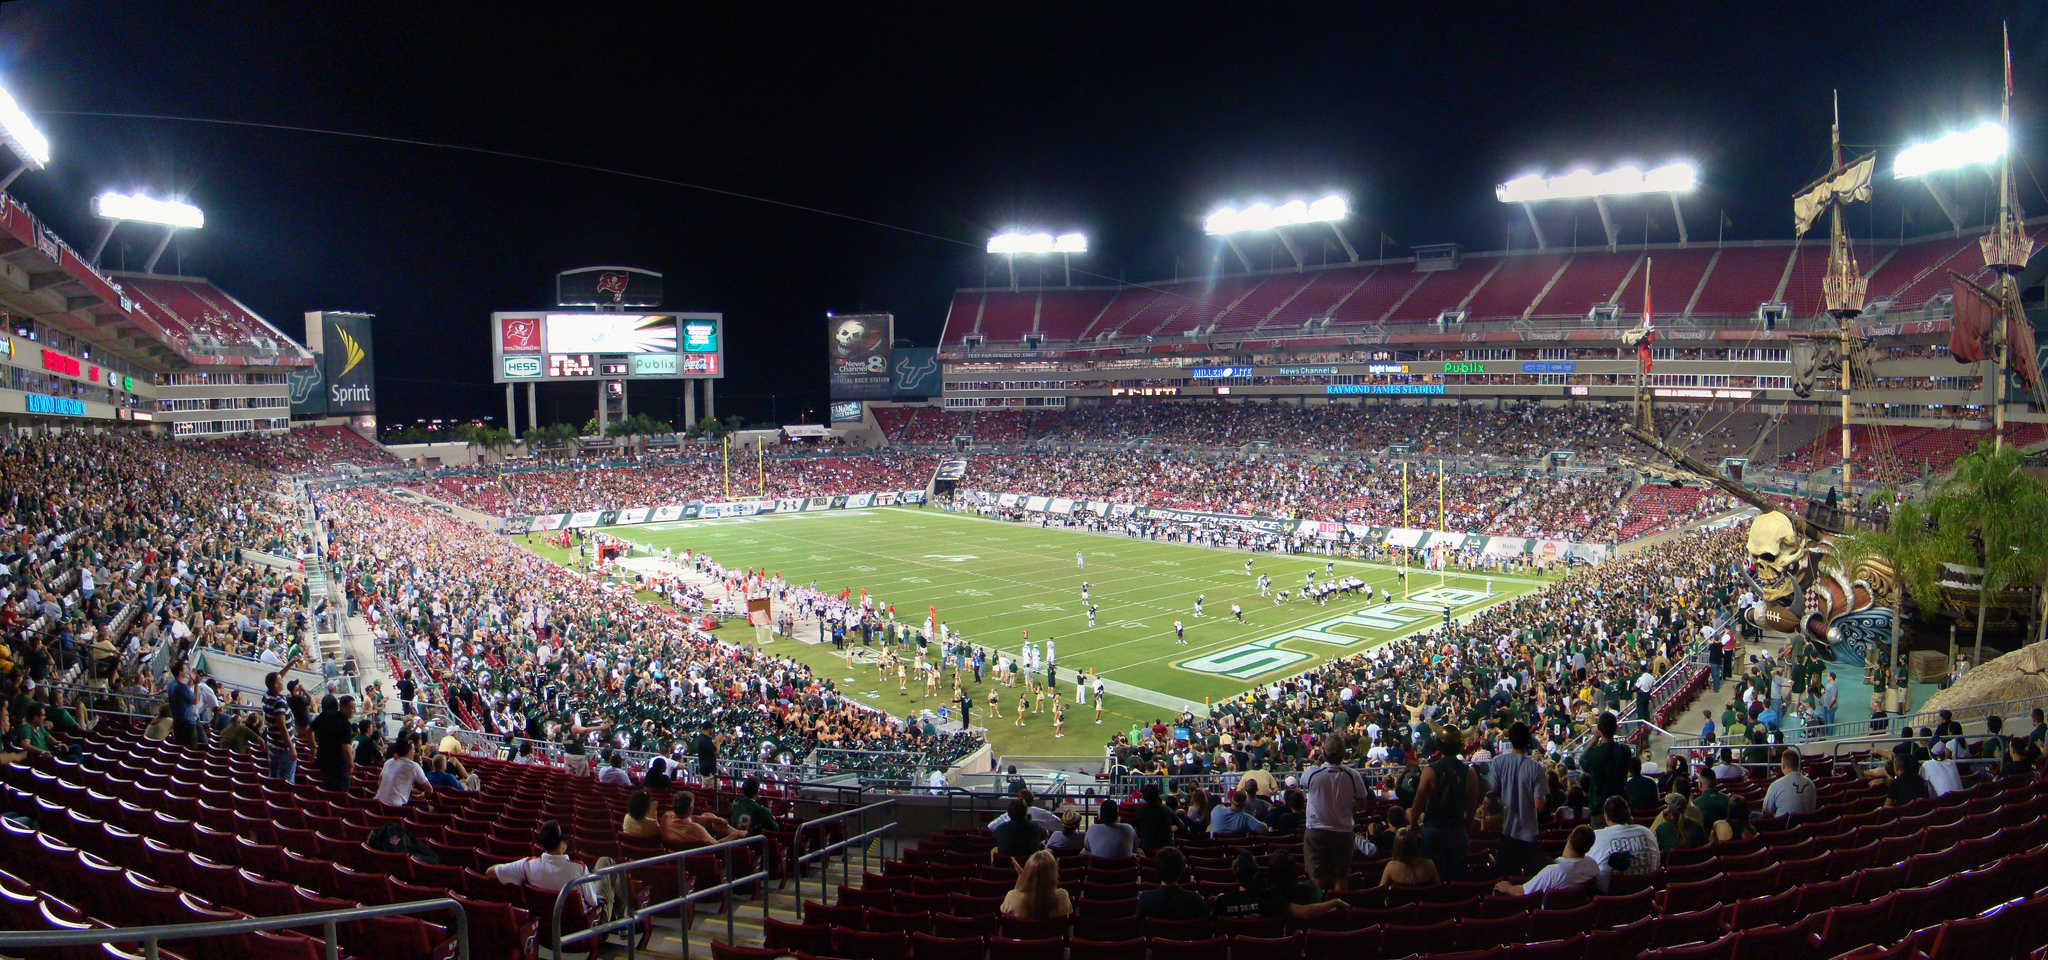 Raymond James Stadium, home of the University of South Florida Bulls